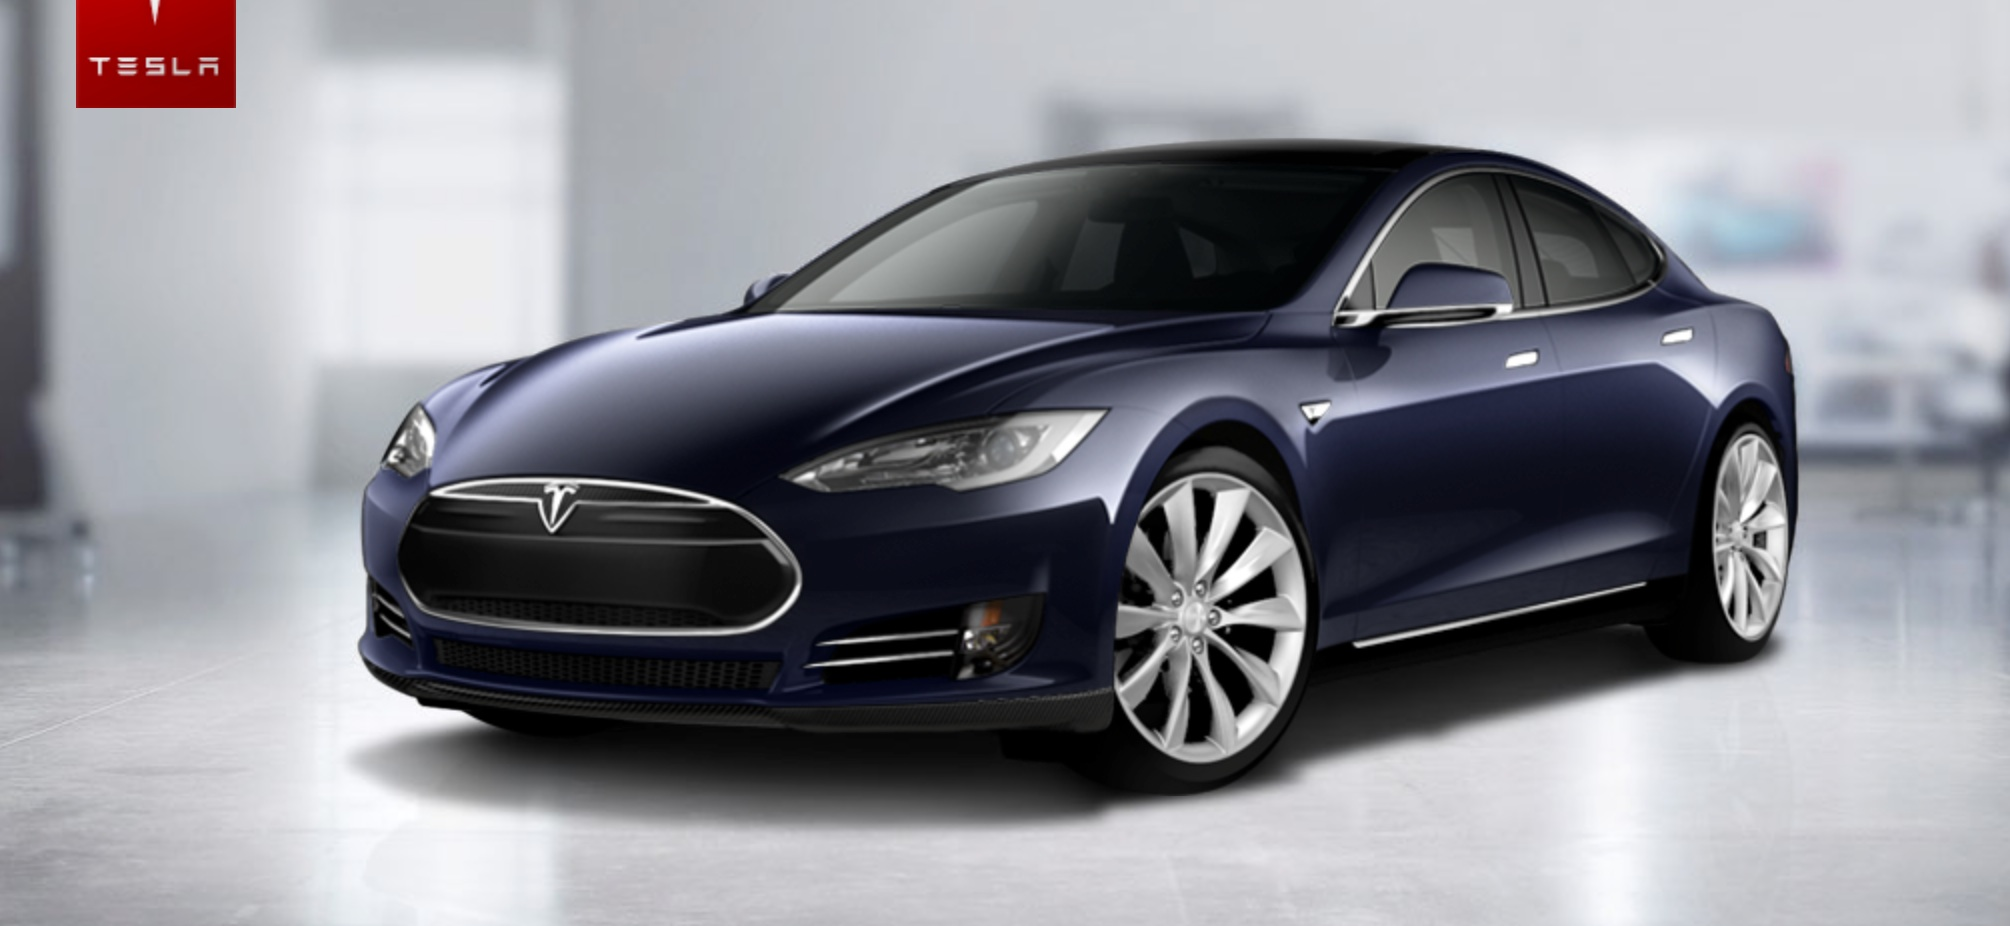 Pftw tesla motors for Tesla motors car price